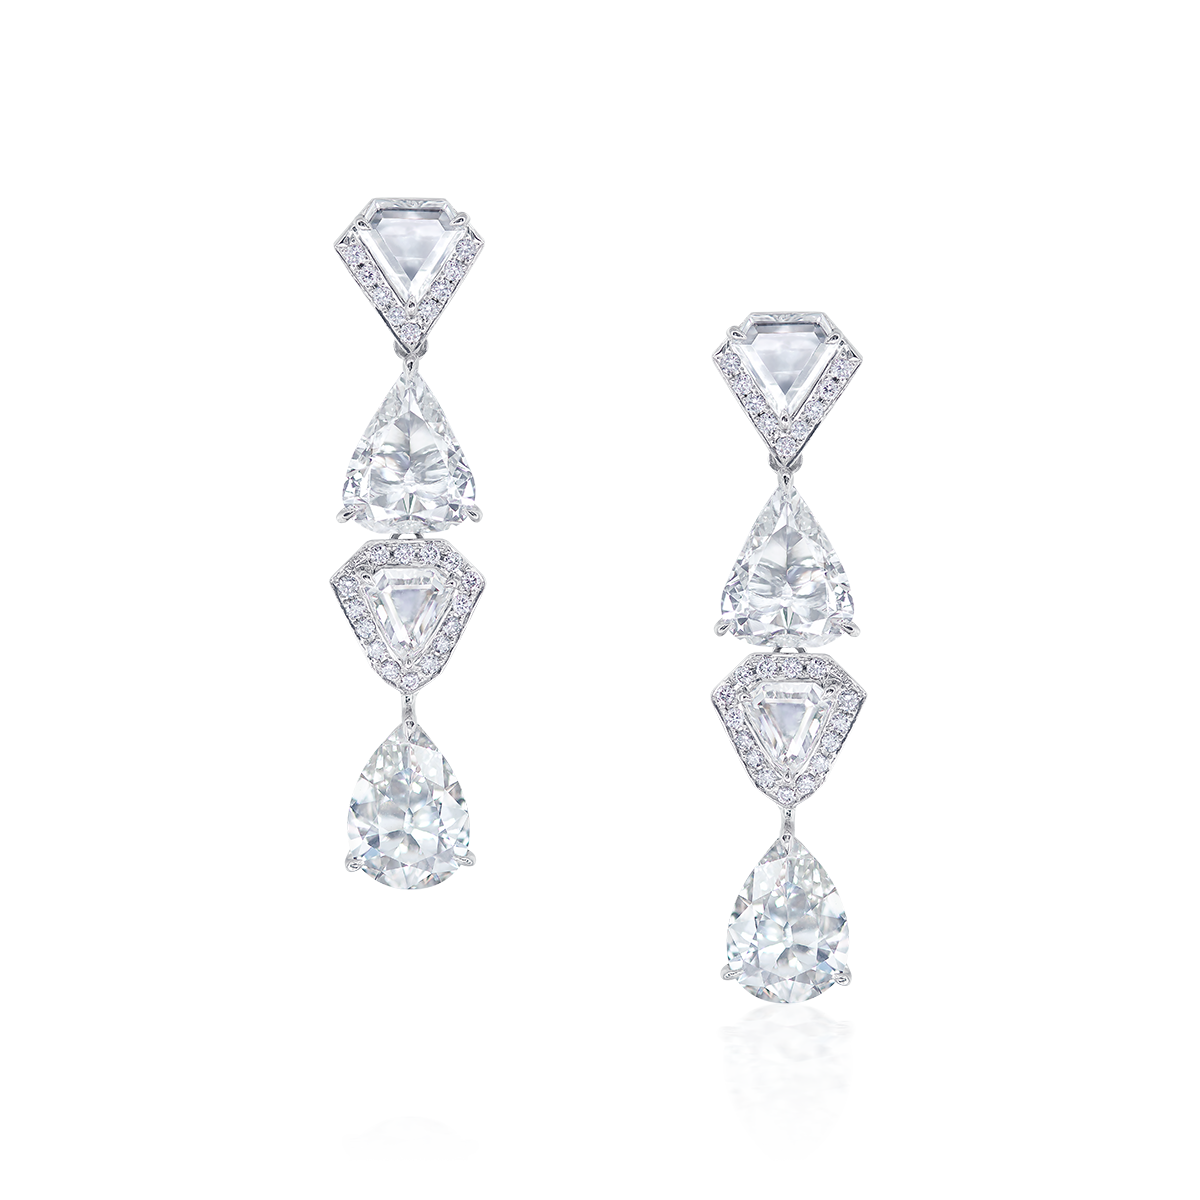 4.03克拉 白鑽鑽石耳環